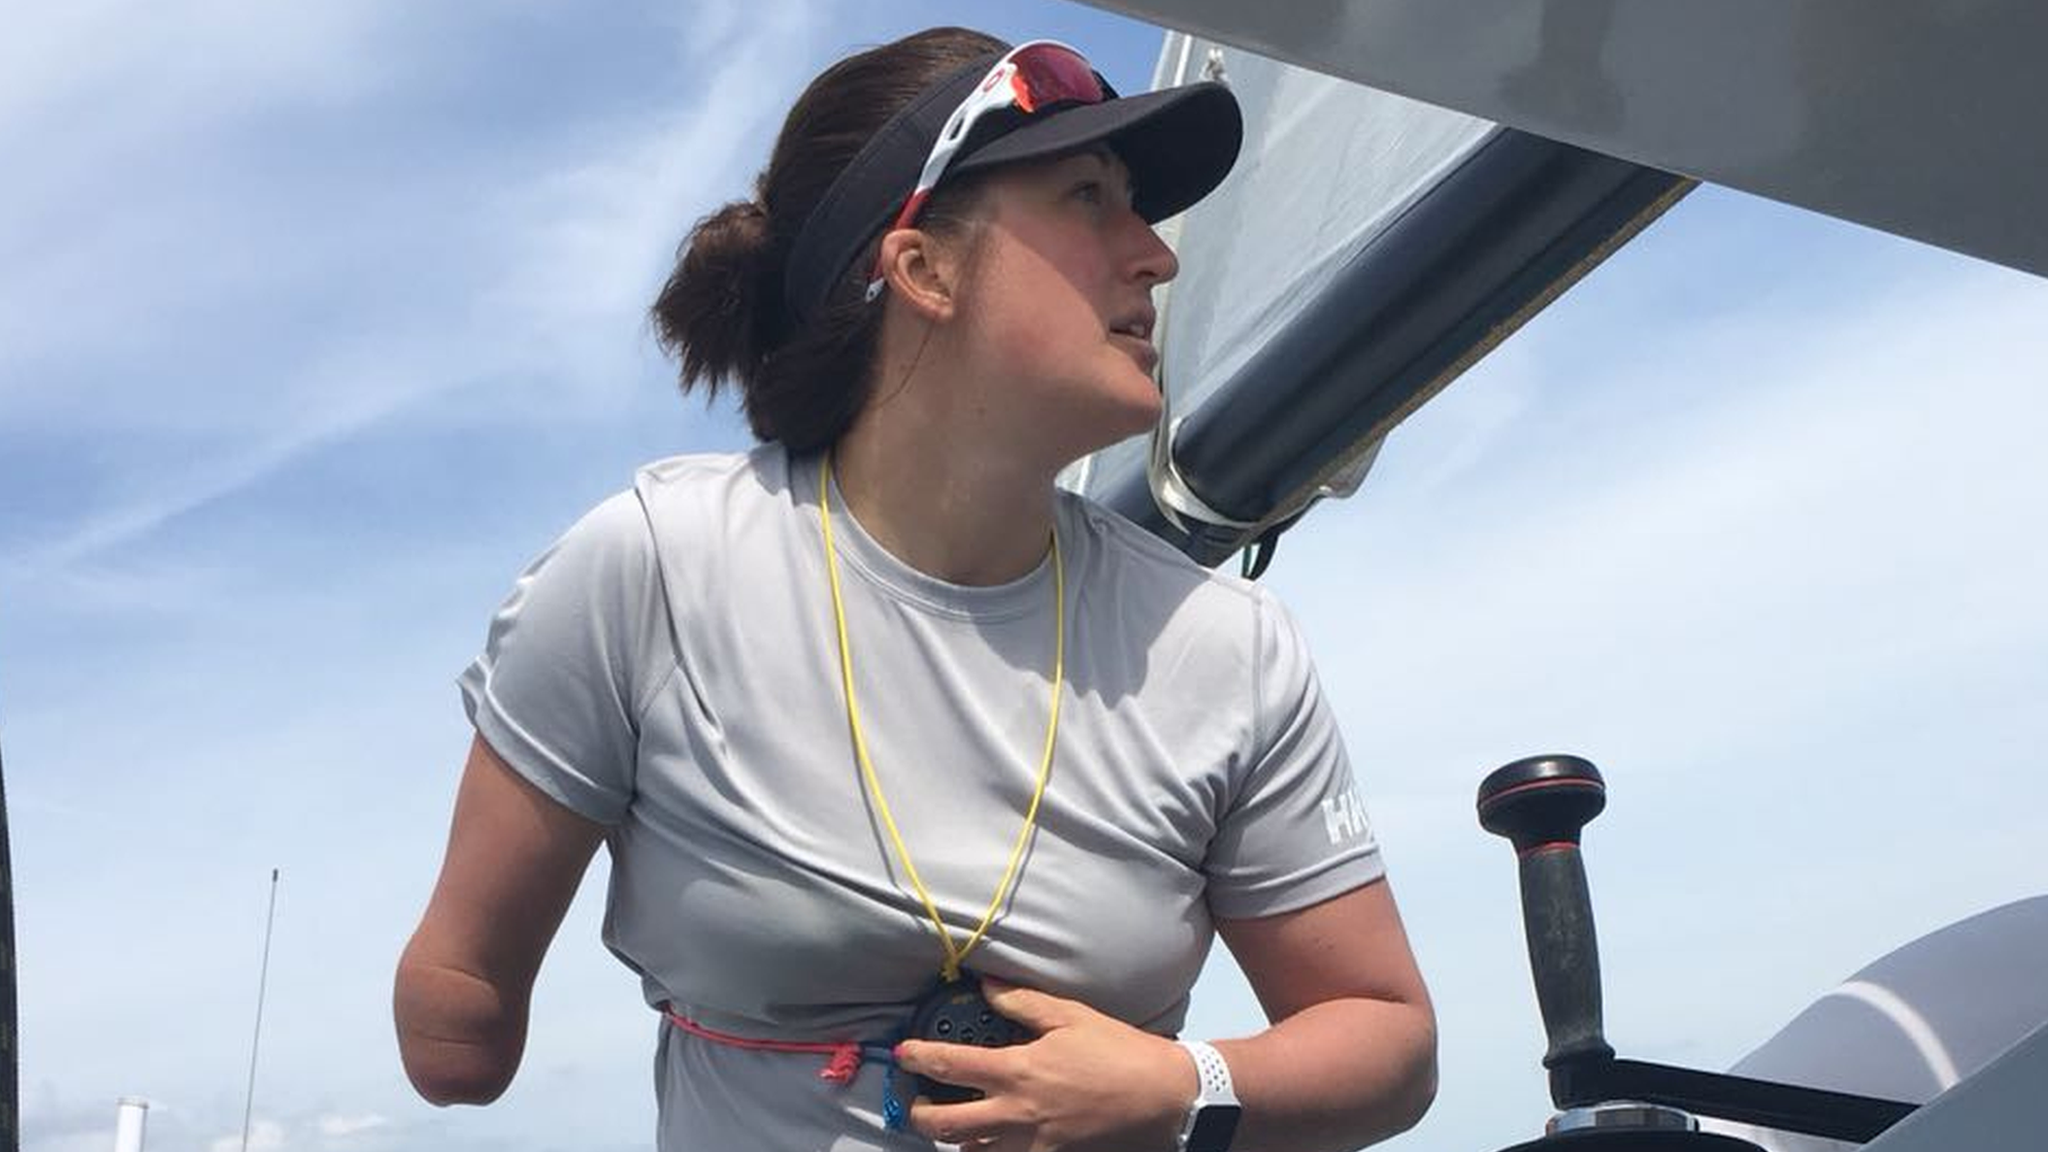 Hannah Stodel: Paralympic sailor on tackling the Vendee Globe and the Round the Island Race